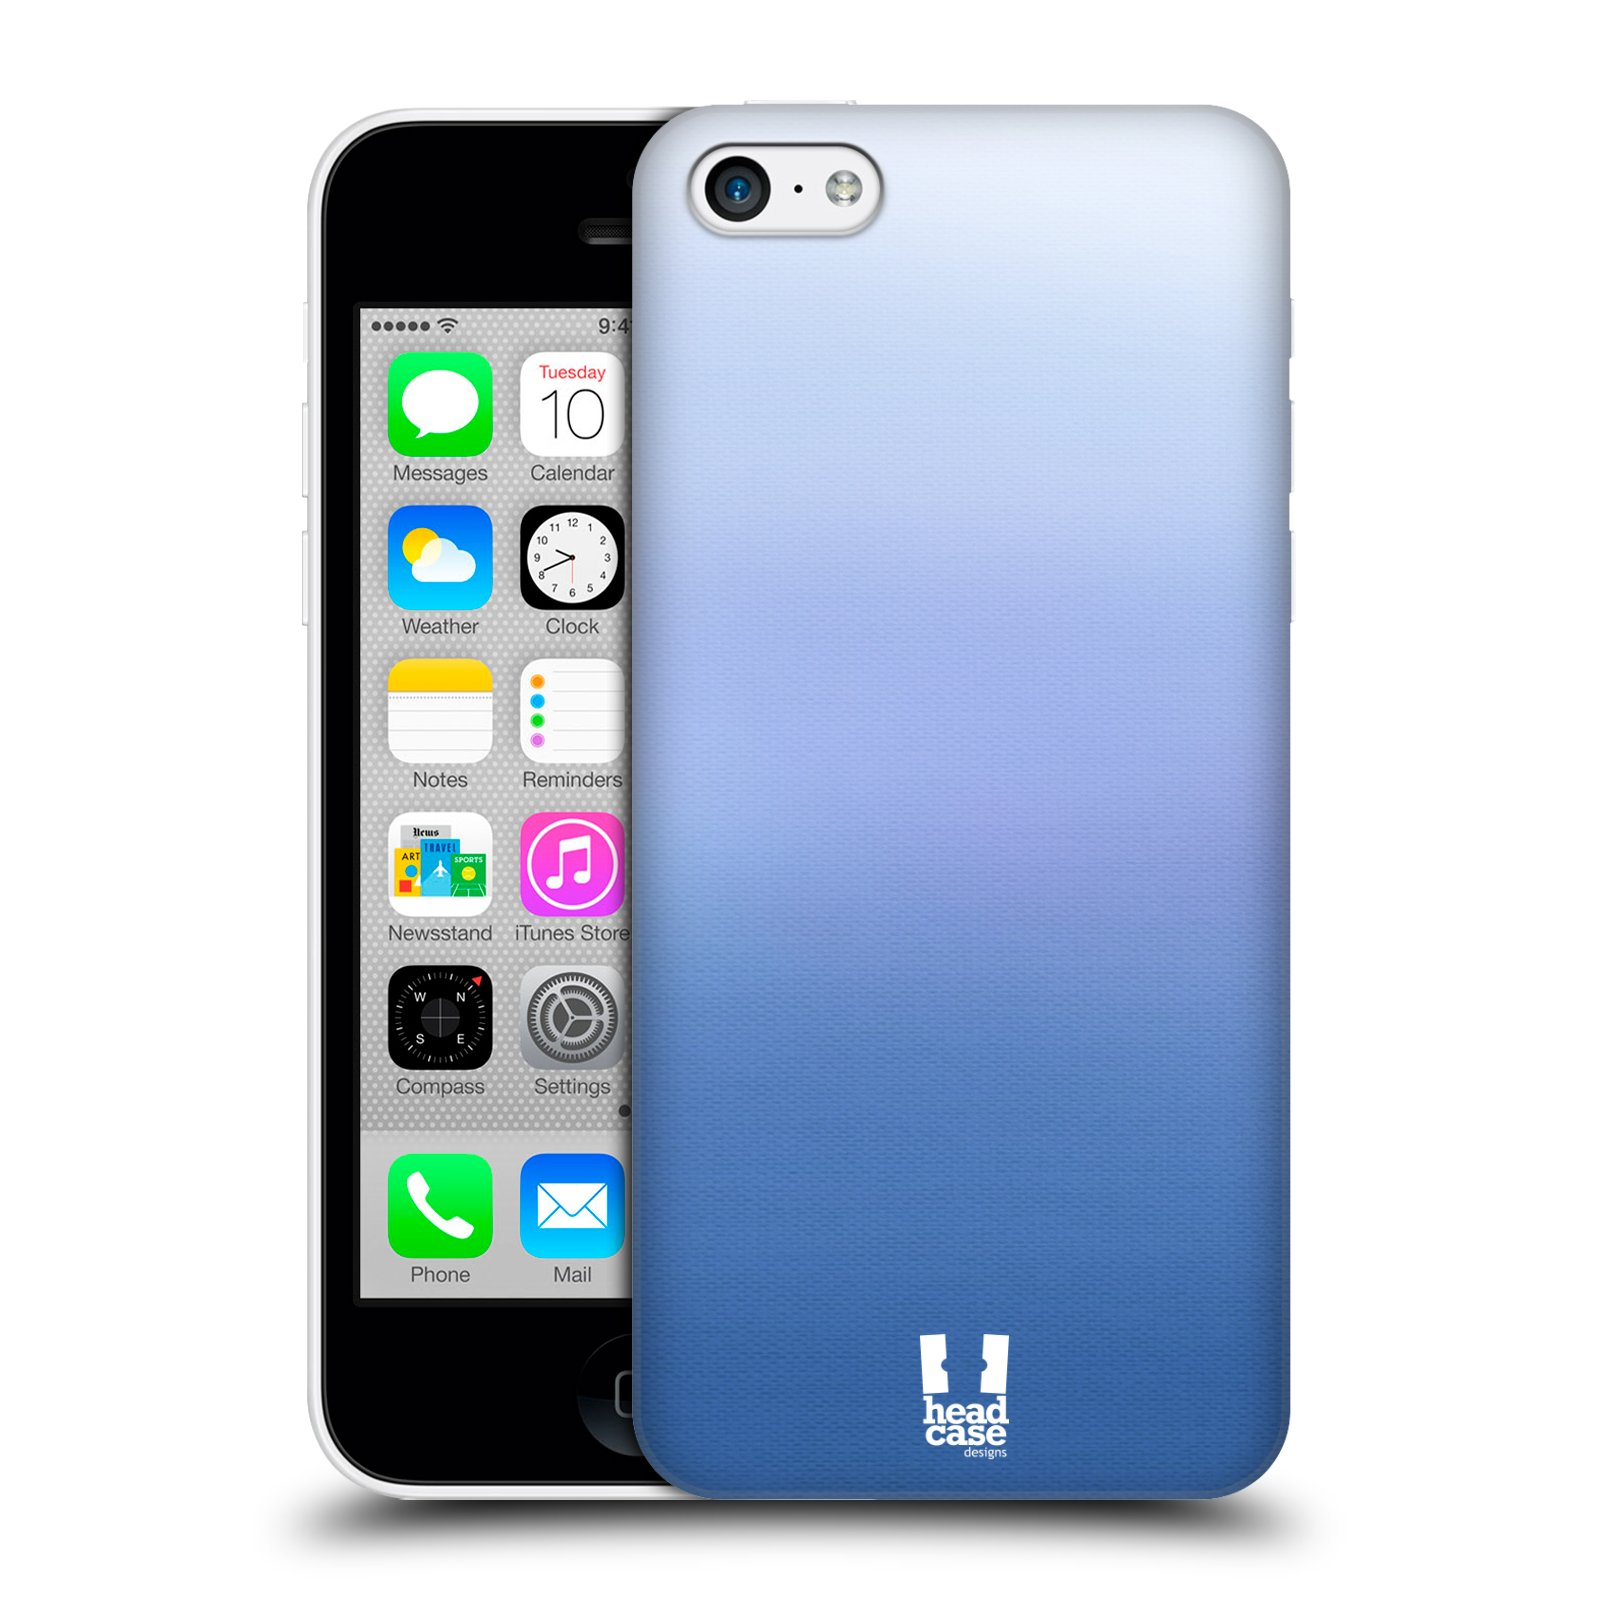 HEAD-CASE-DESIGNS-OMBRE-PROTECTIVE-SNAP-ON-BACK-CASE-COVER-FOR-APPLE-iPHONE-5C